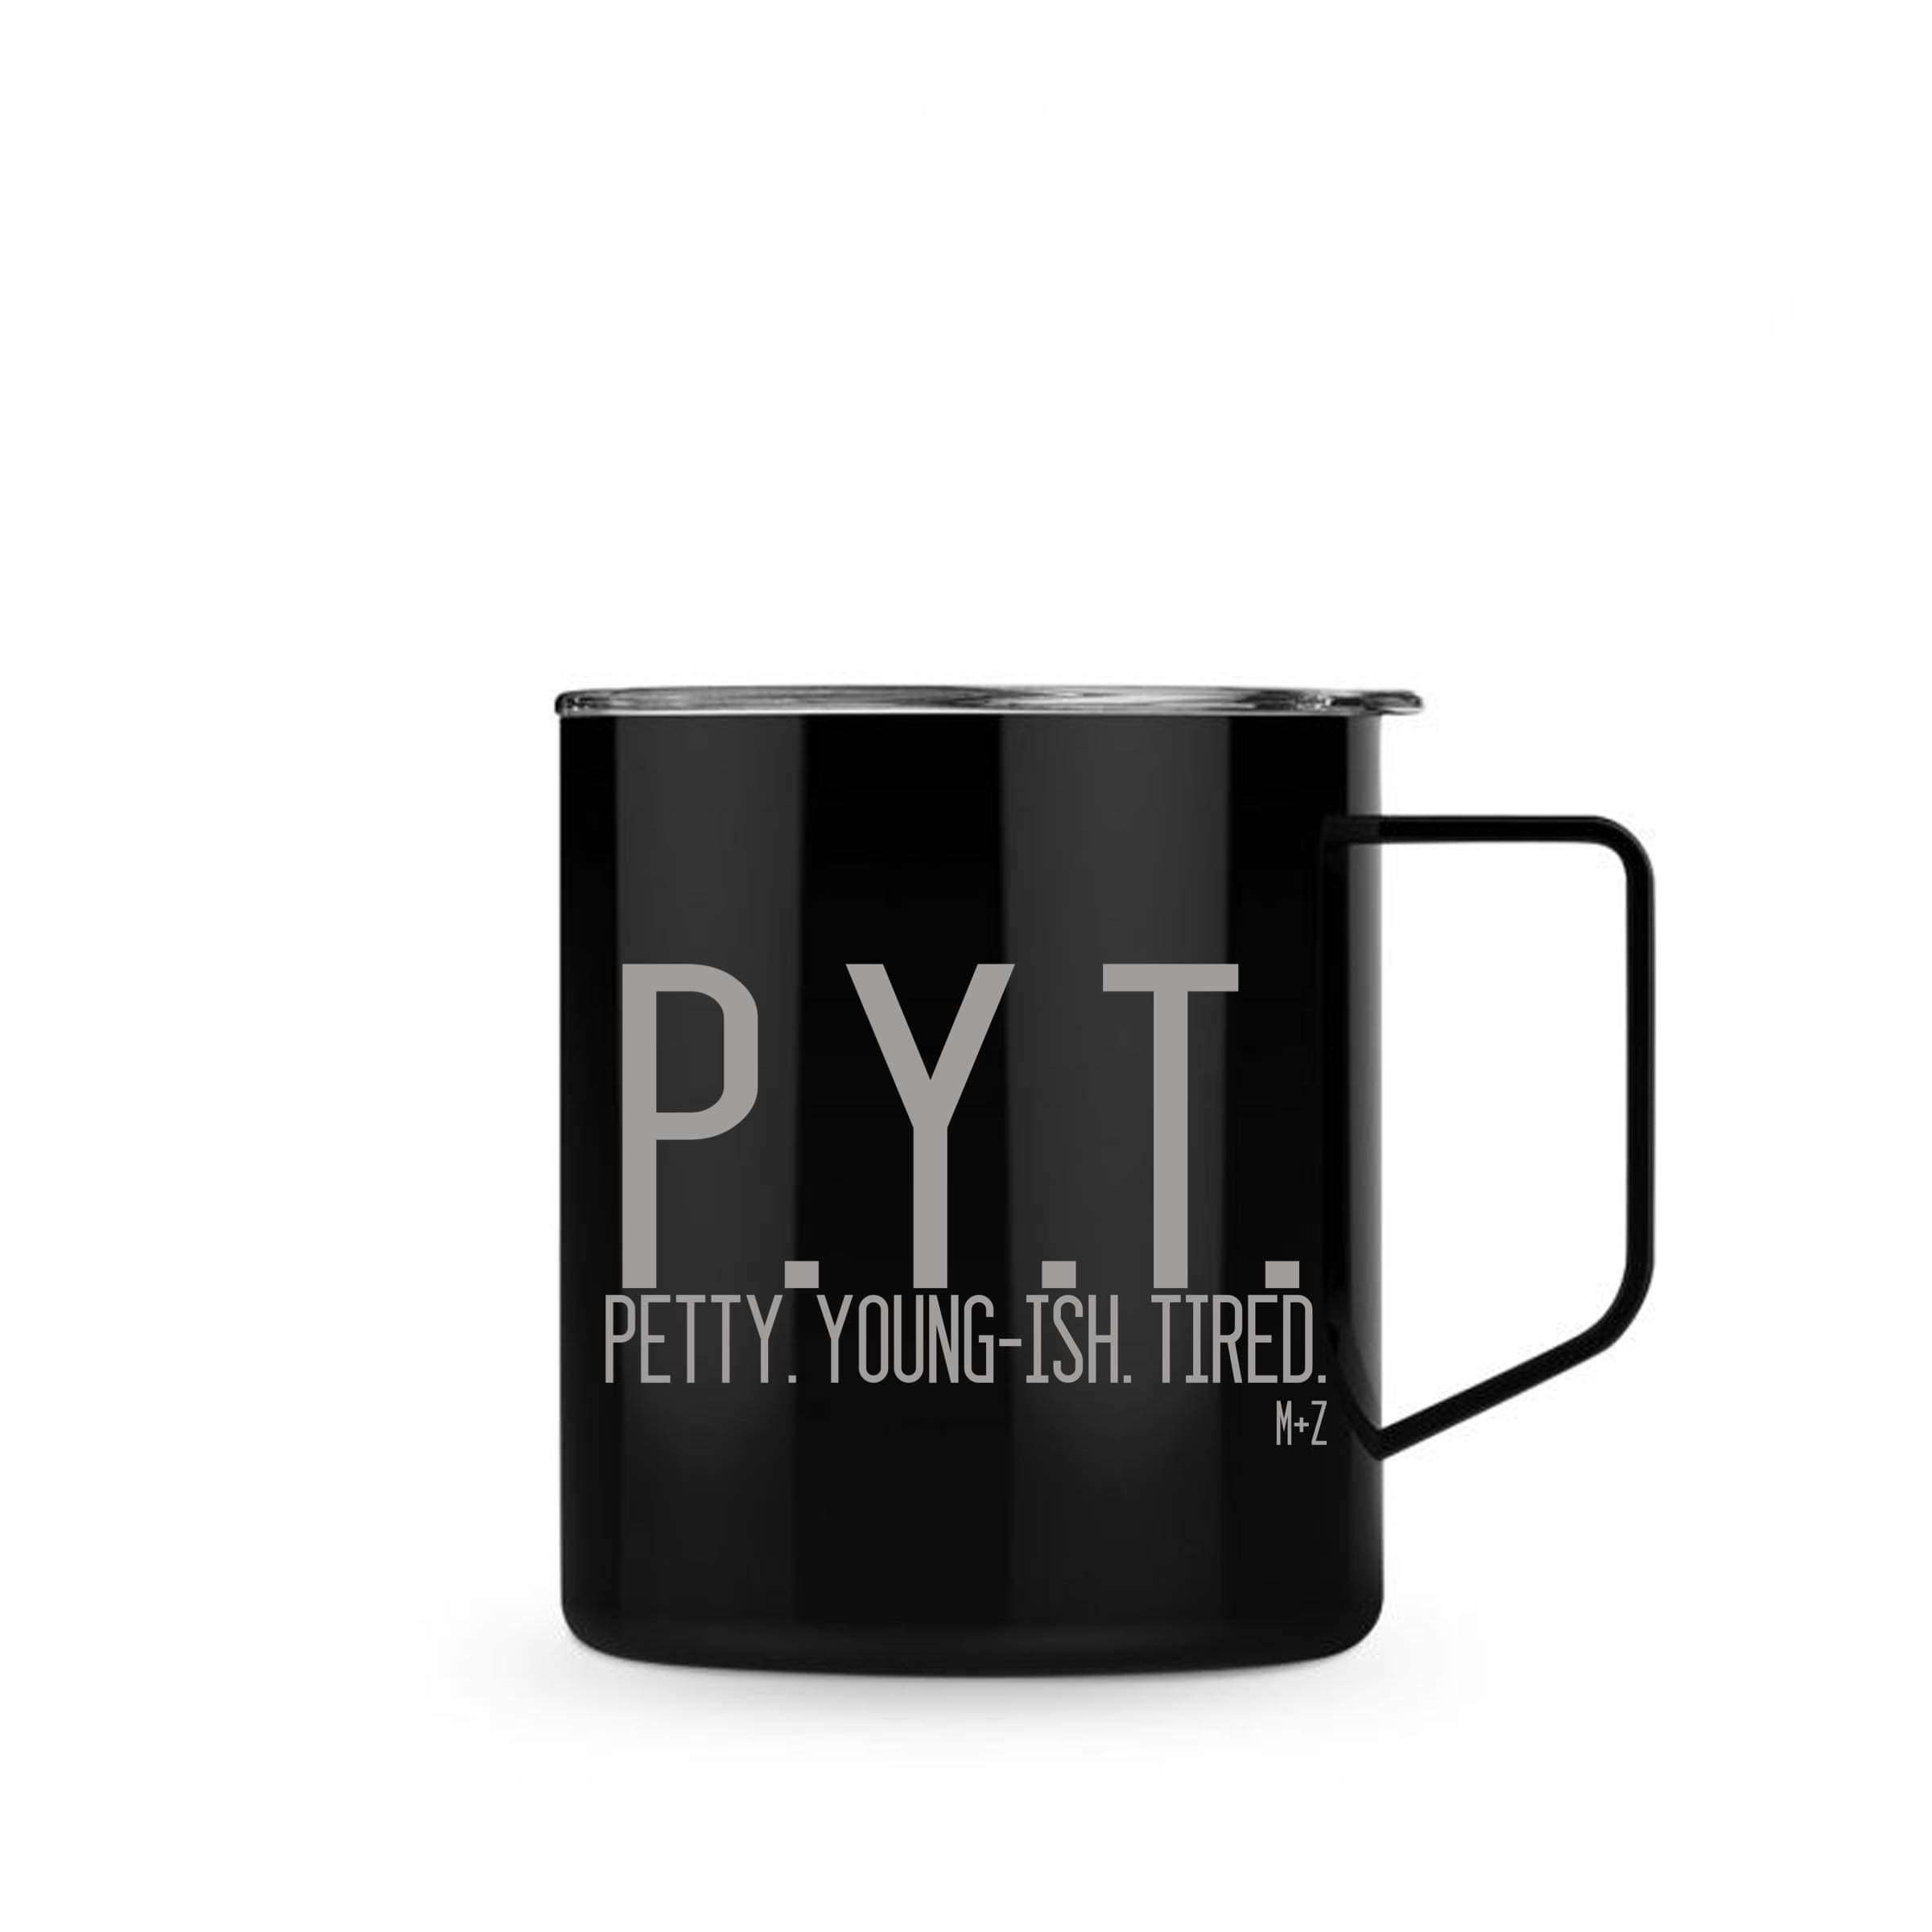 P.Y.T. Petty. Young-ish. Tired. Mug/Cup